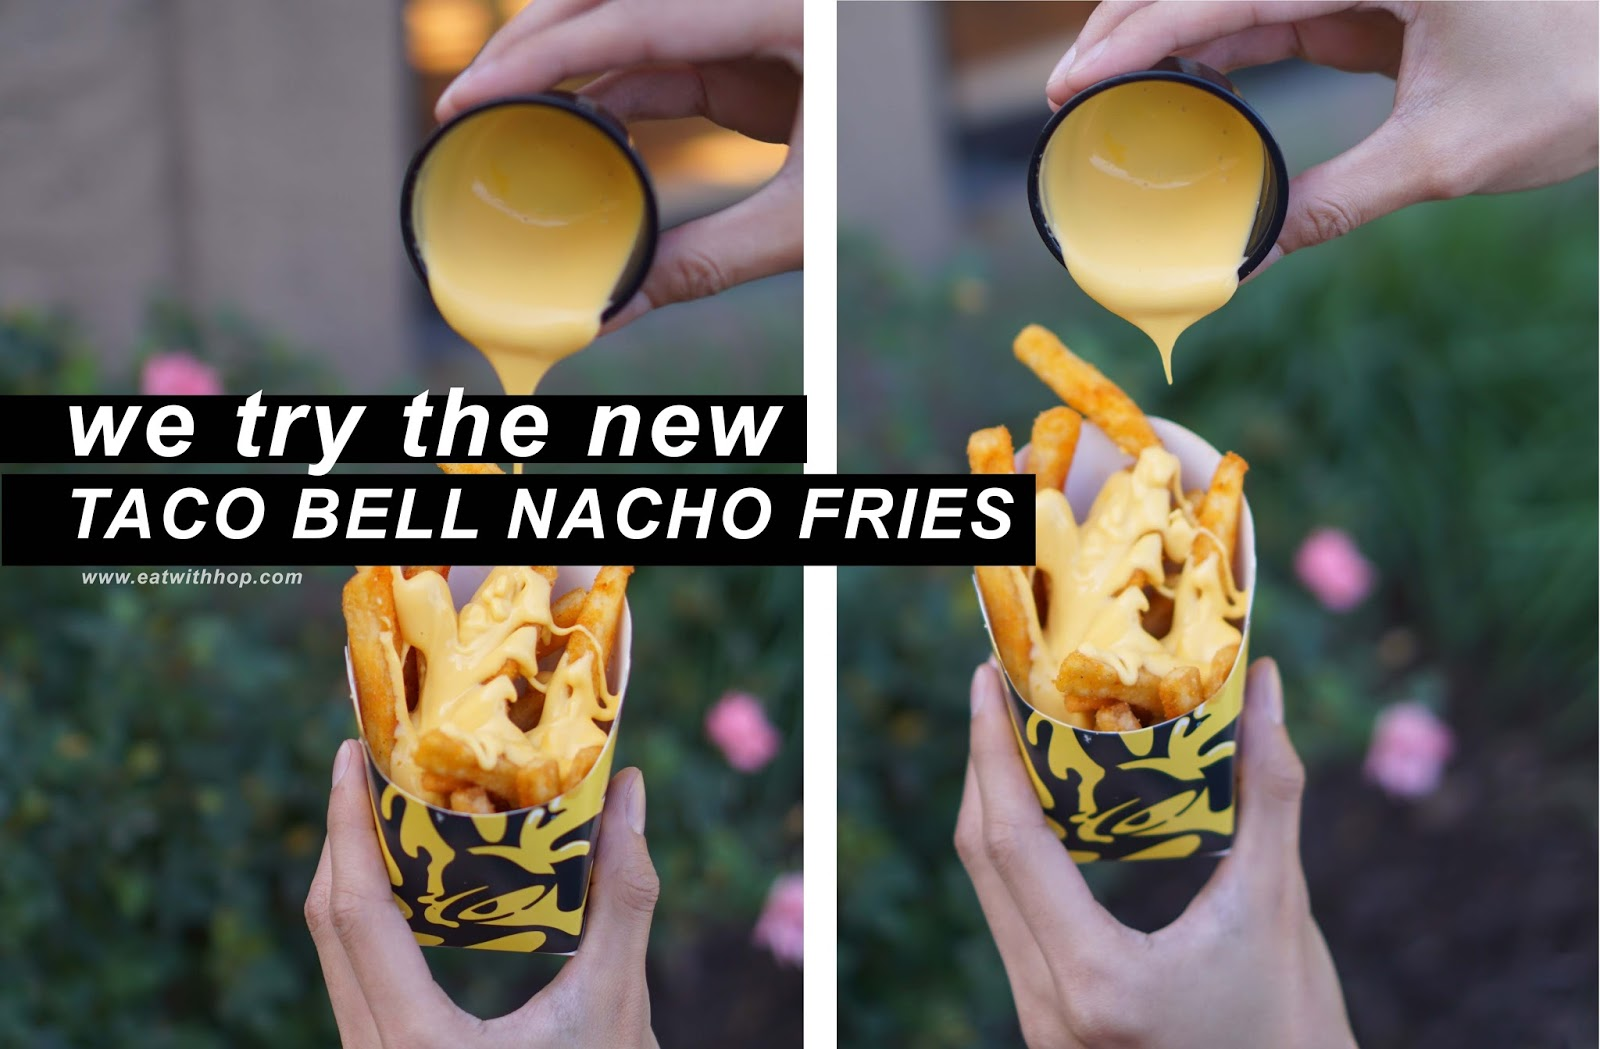 Taco Bell Now Has $1 Nacho Fries For a Limited Time - Here's Our Verdict